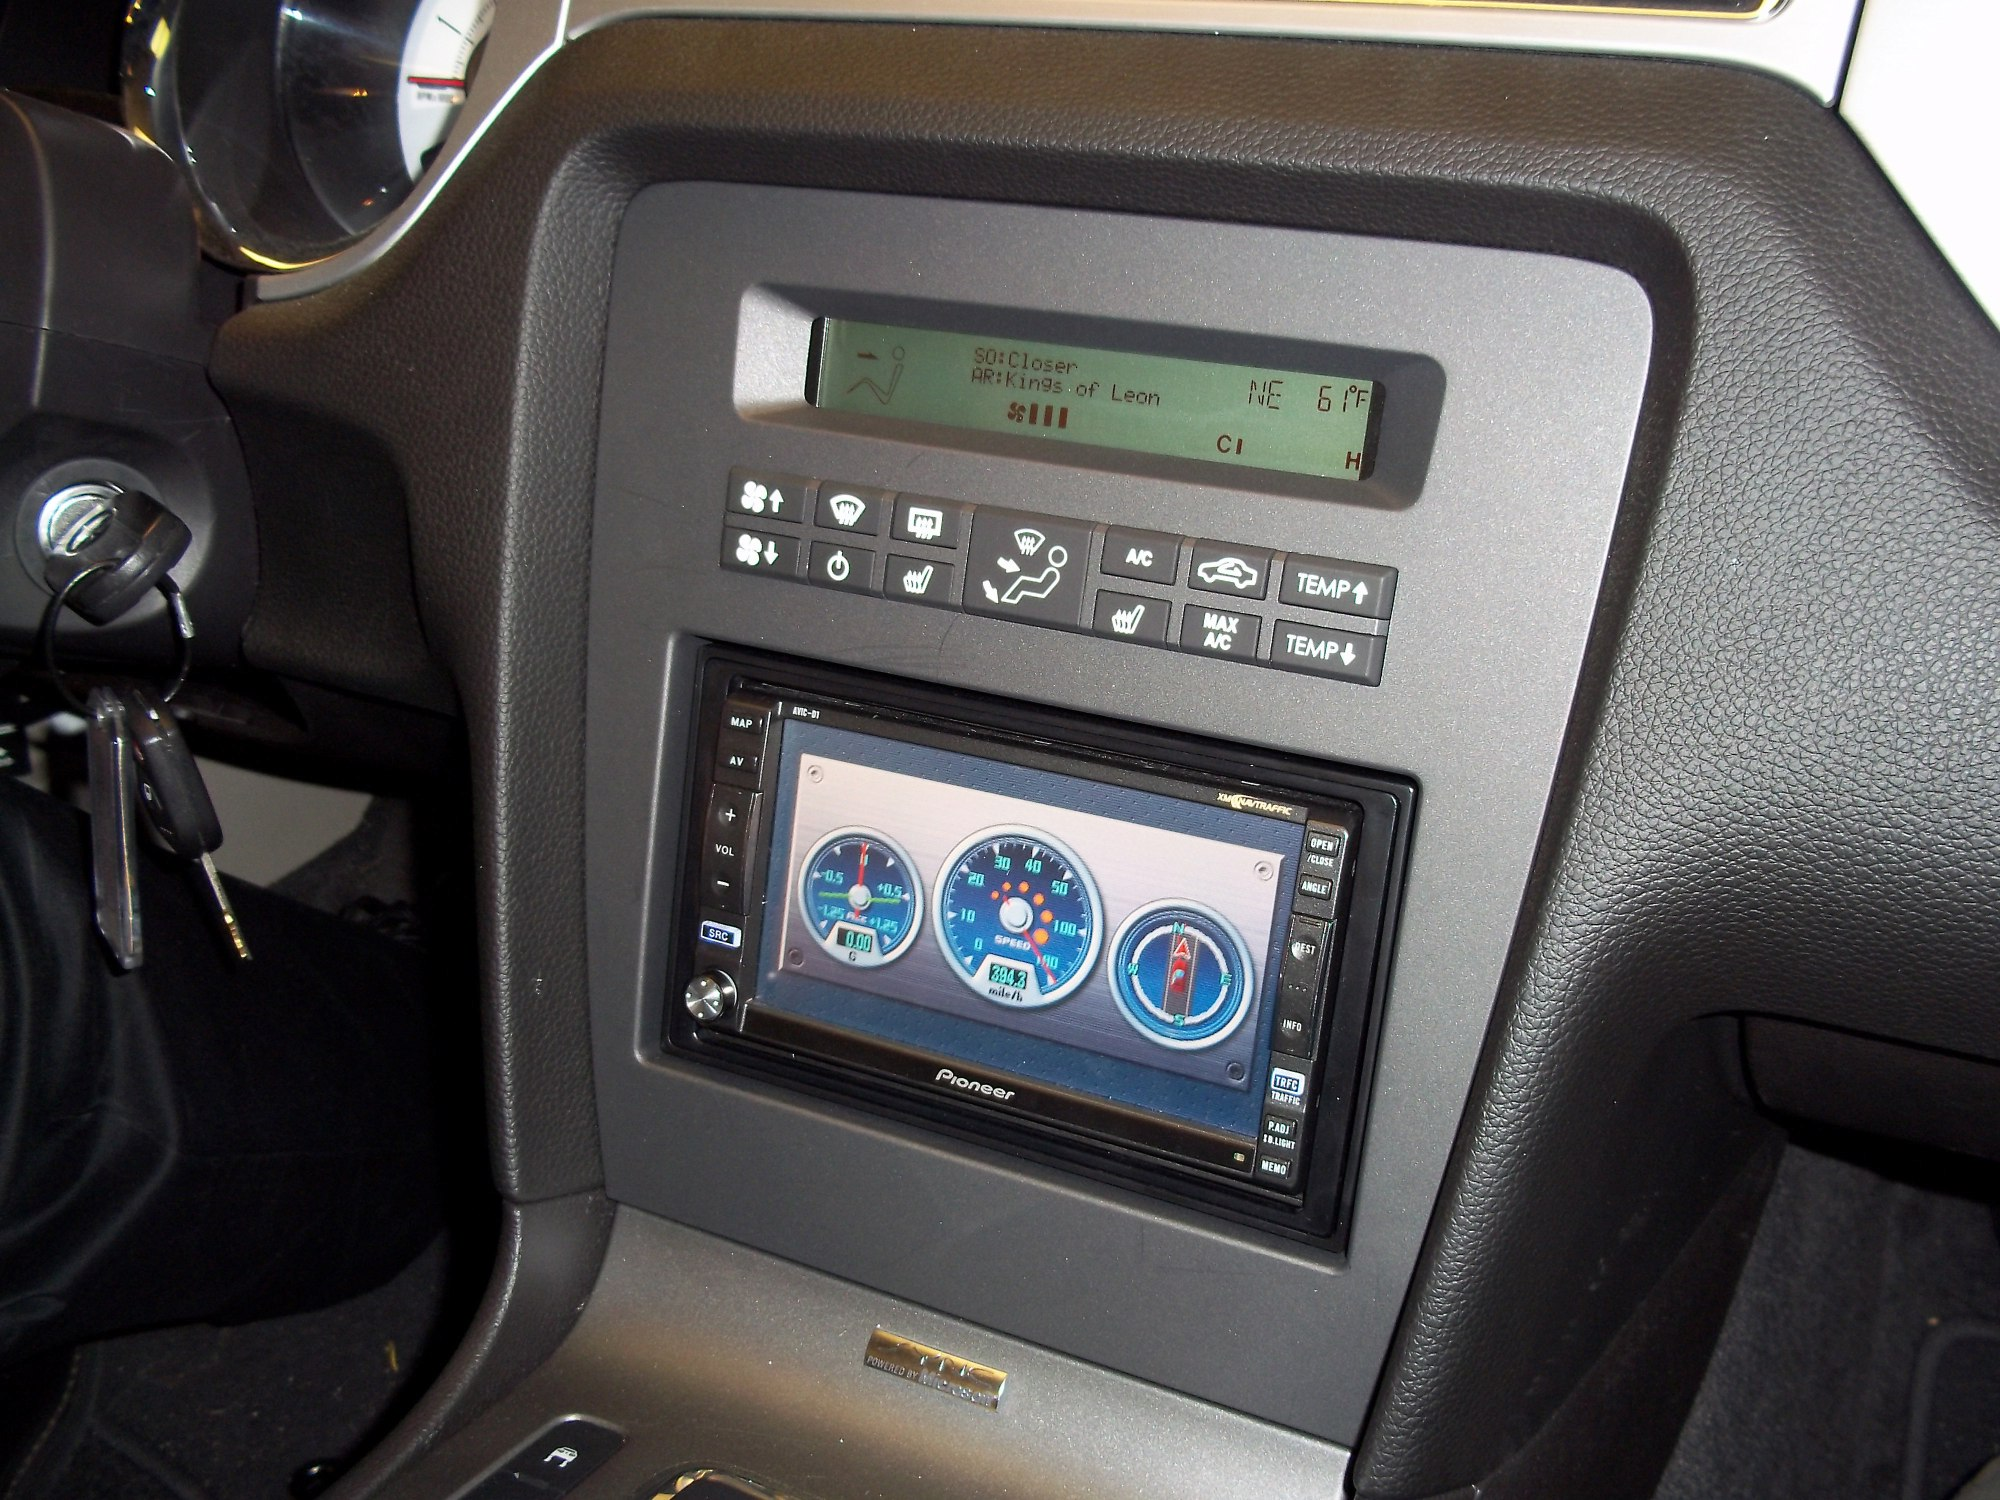 hight resolution of ford mustang factory integration dash adapter install a new car stereo in 2010 up models without navigation includes blue led touchscreen display for